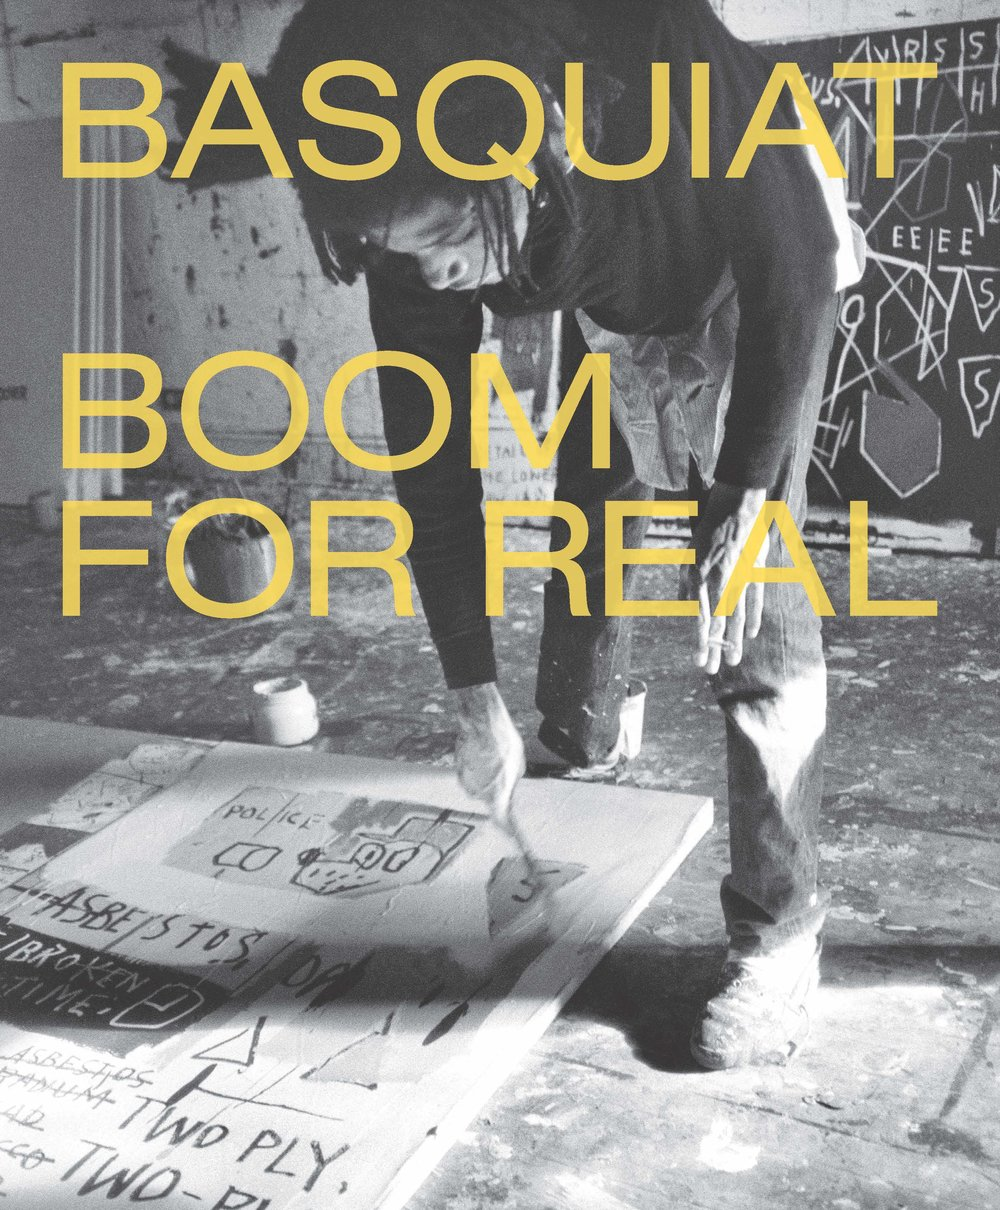 170731_Basquiat_Book_Cover_for_Barbican_shop.jpg